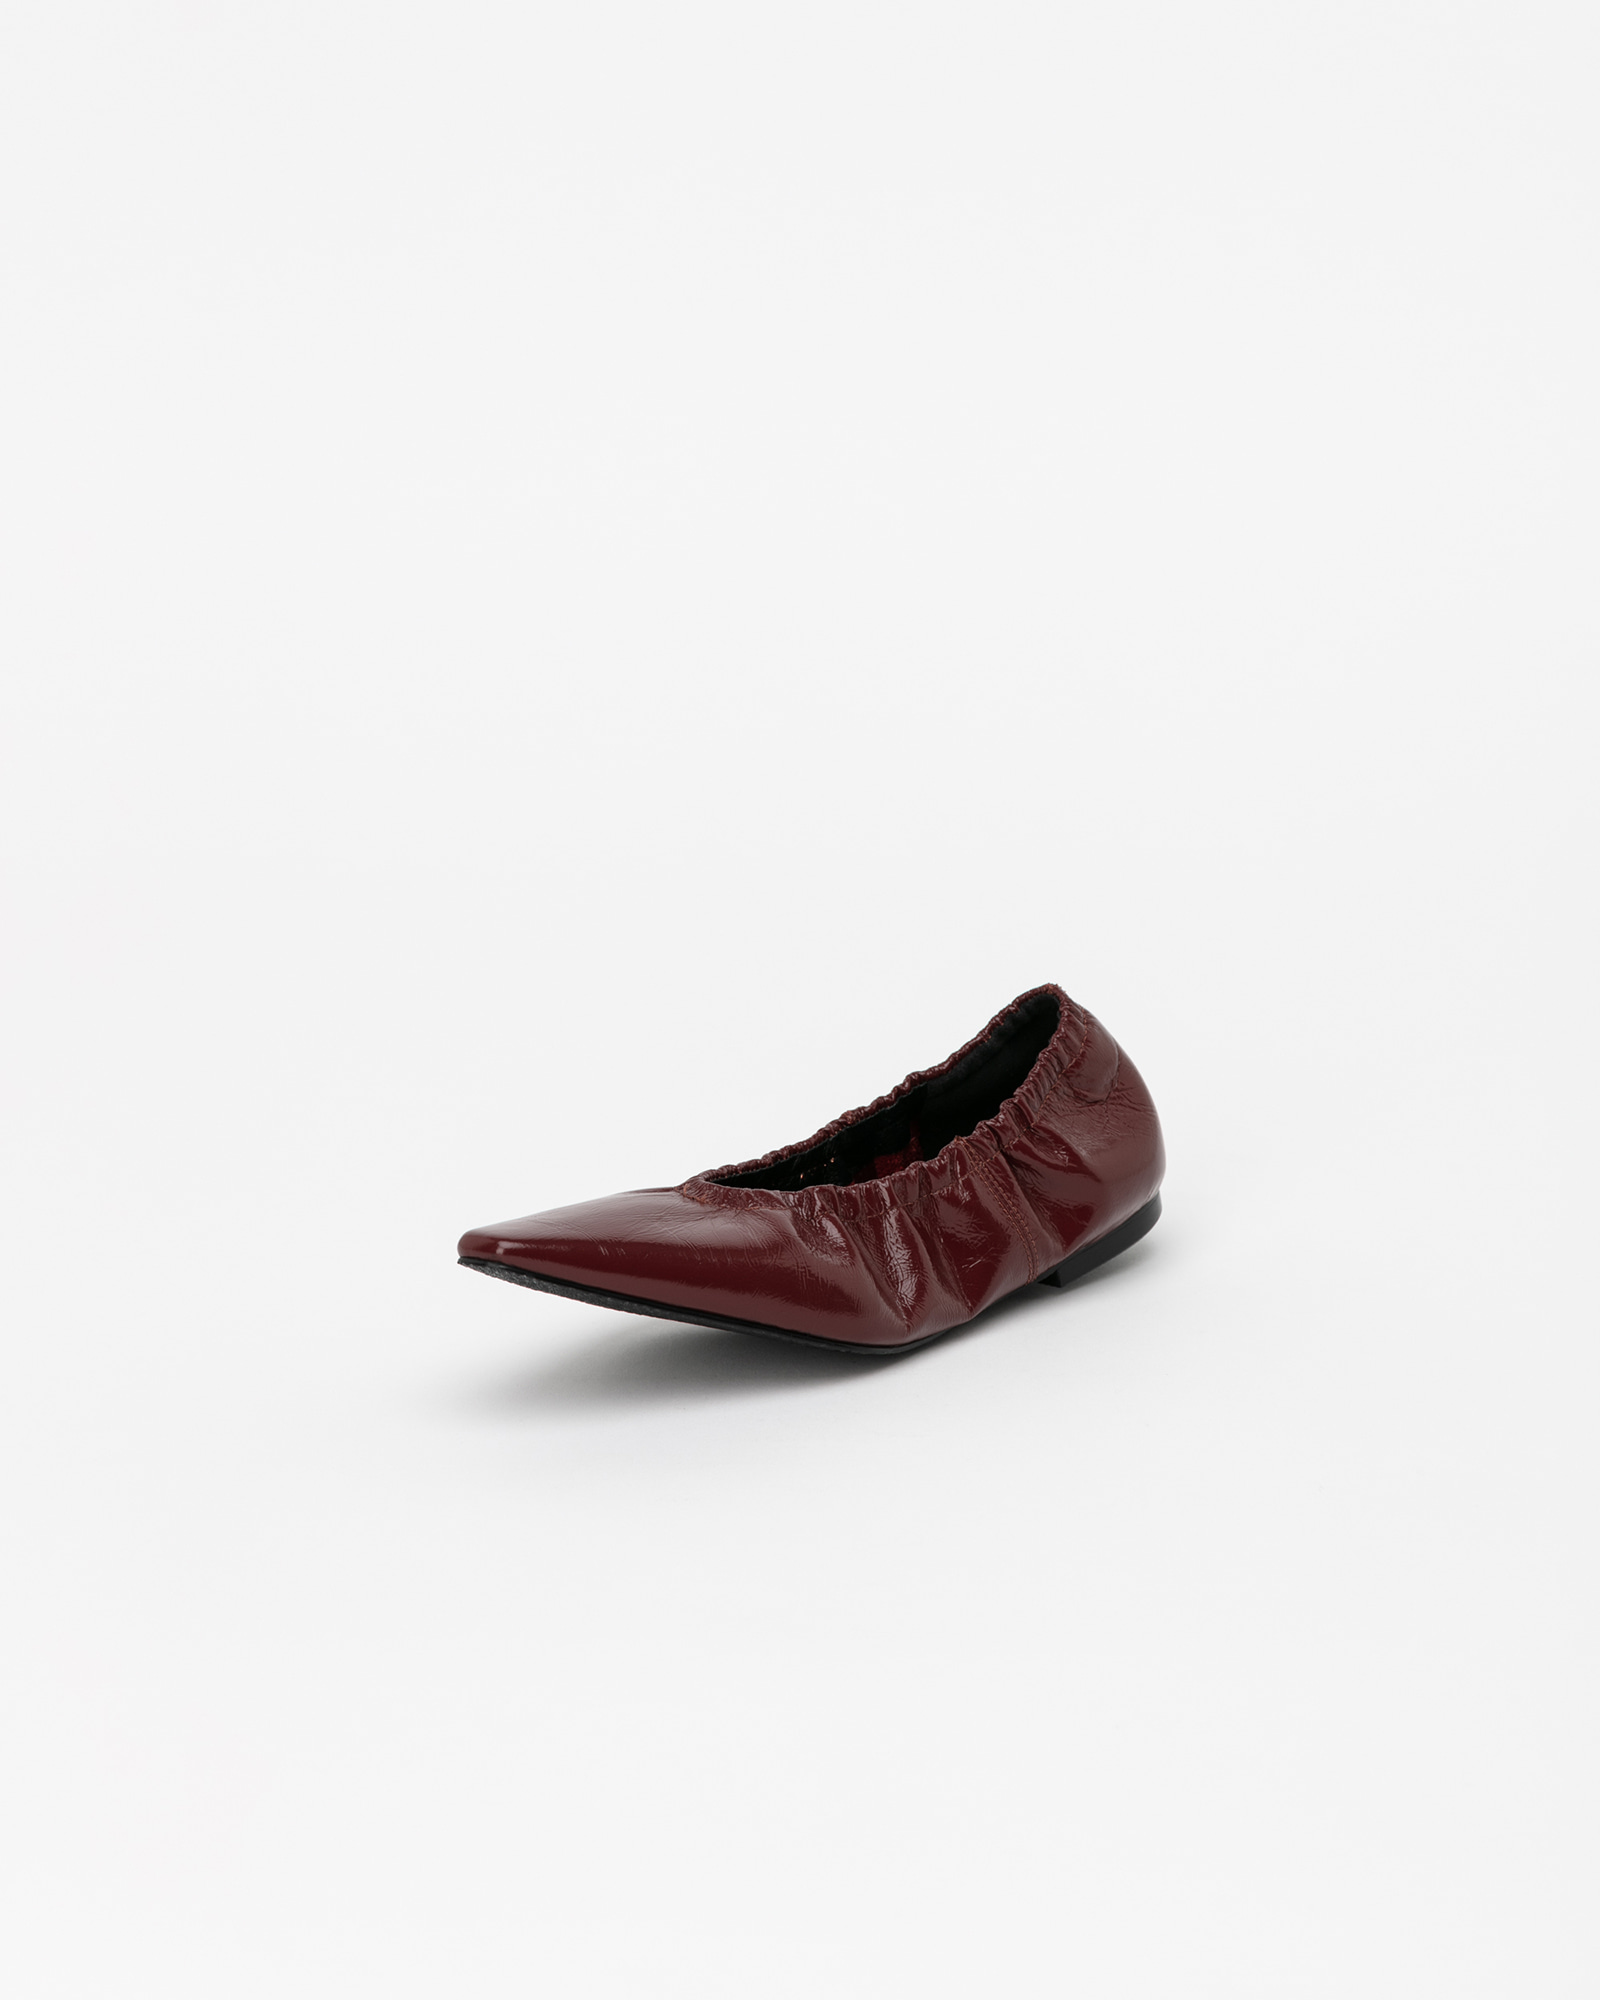 Arnaud Soft Flat Shoes in Wrinkled Wine